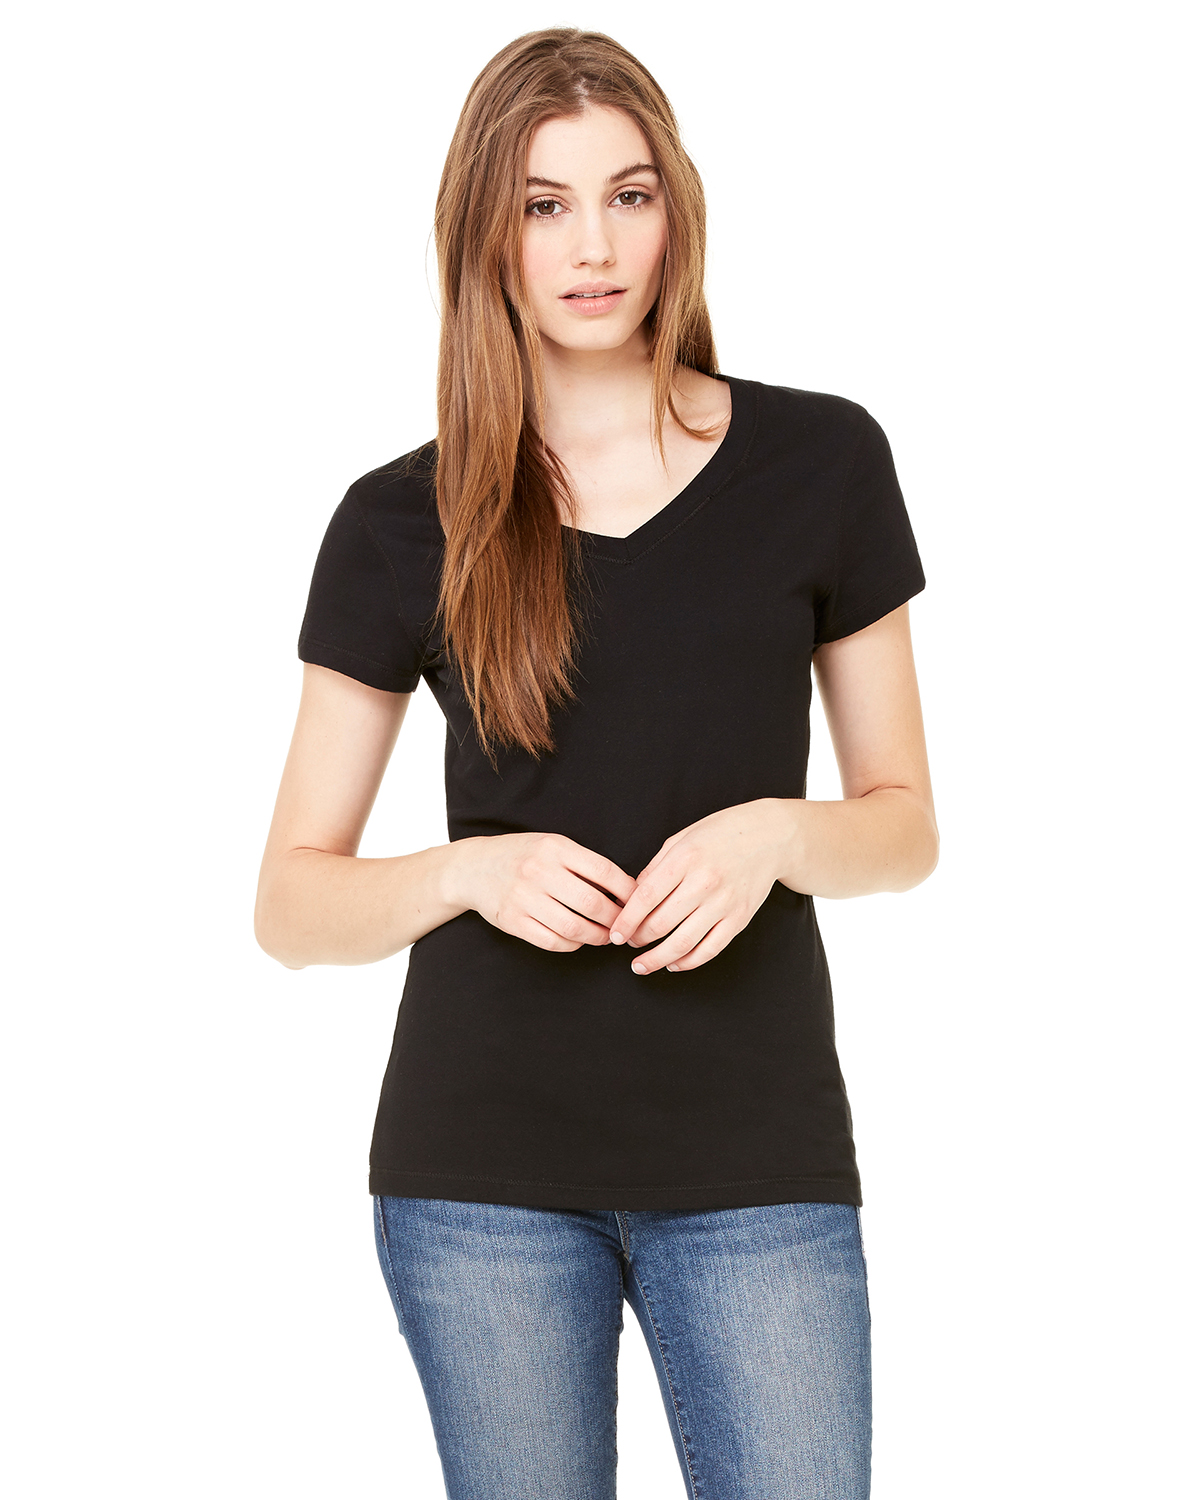 bella 6005 Ladies' Short Sleeve V-Neck T-Shirt